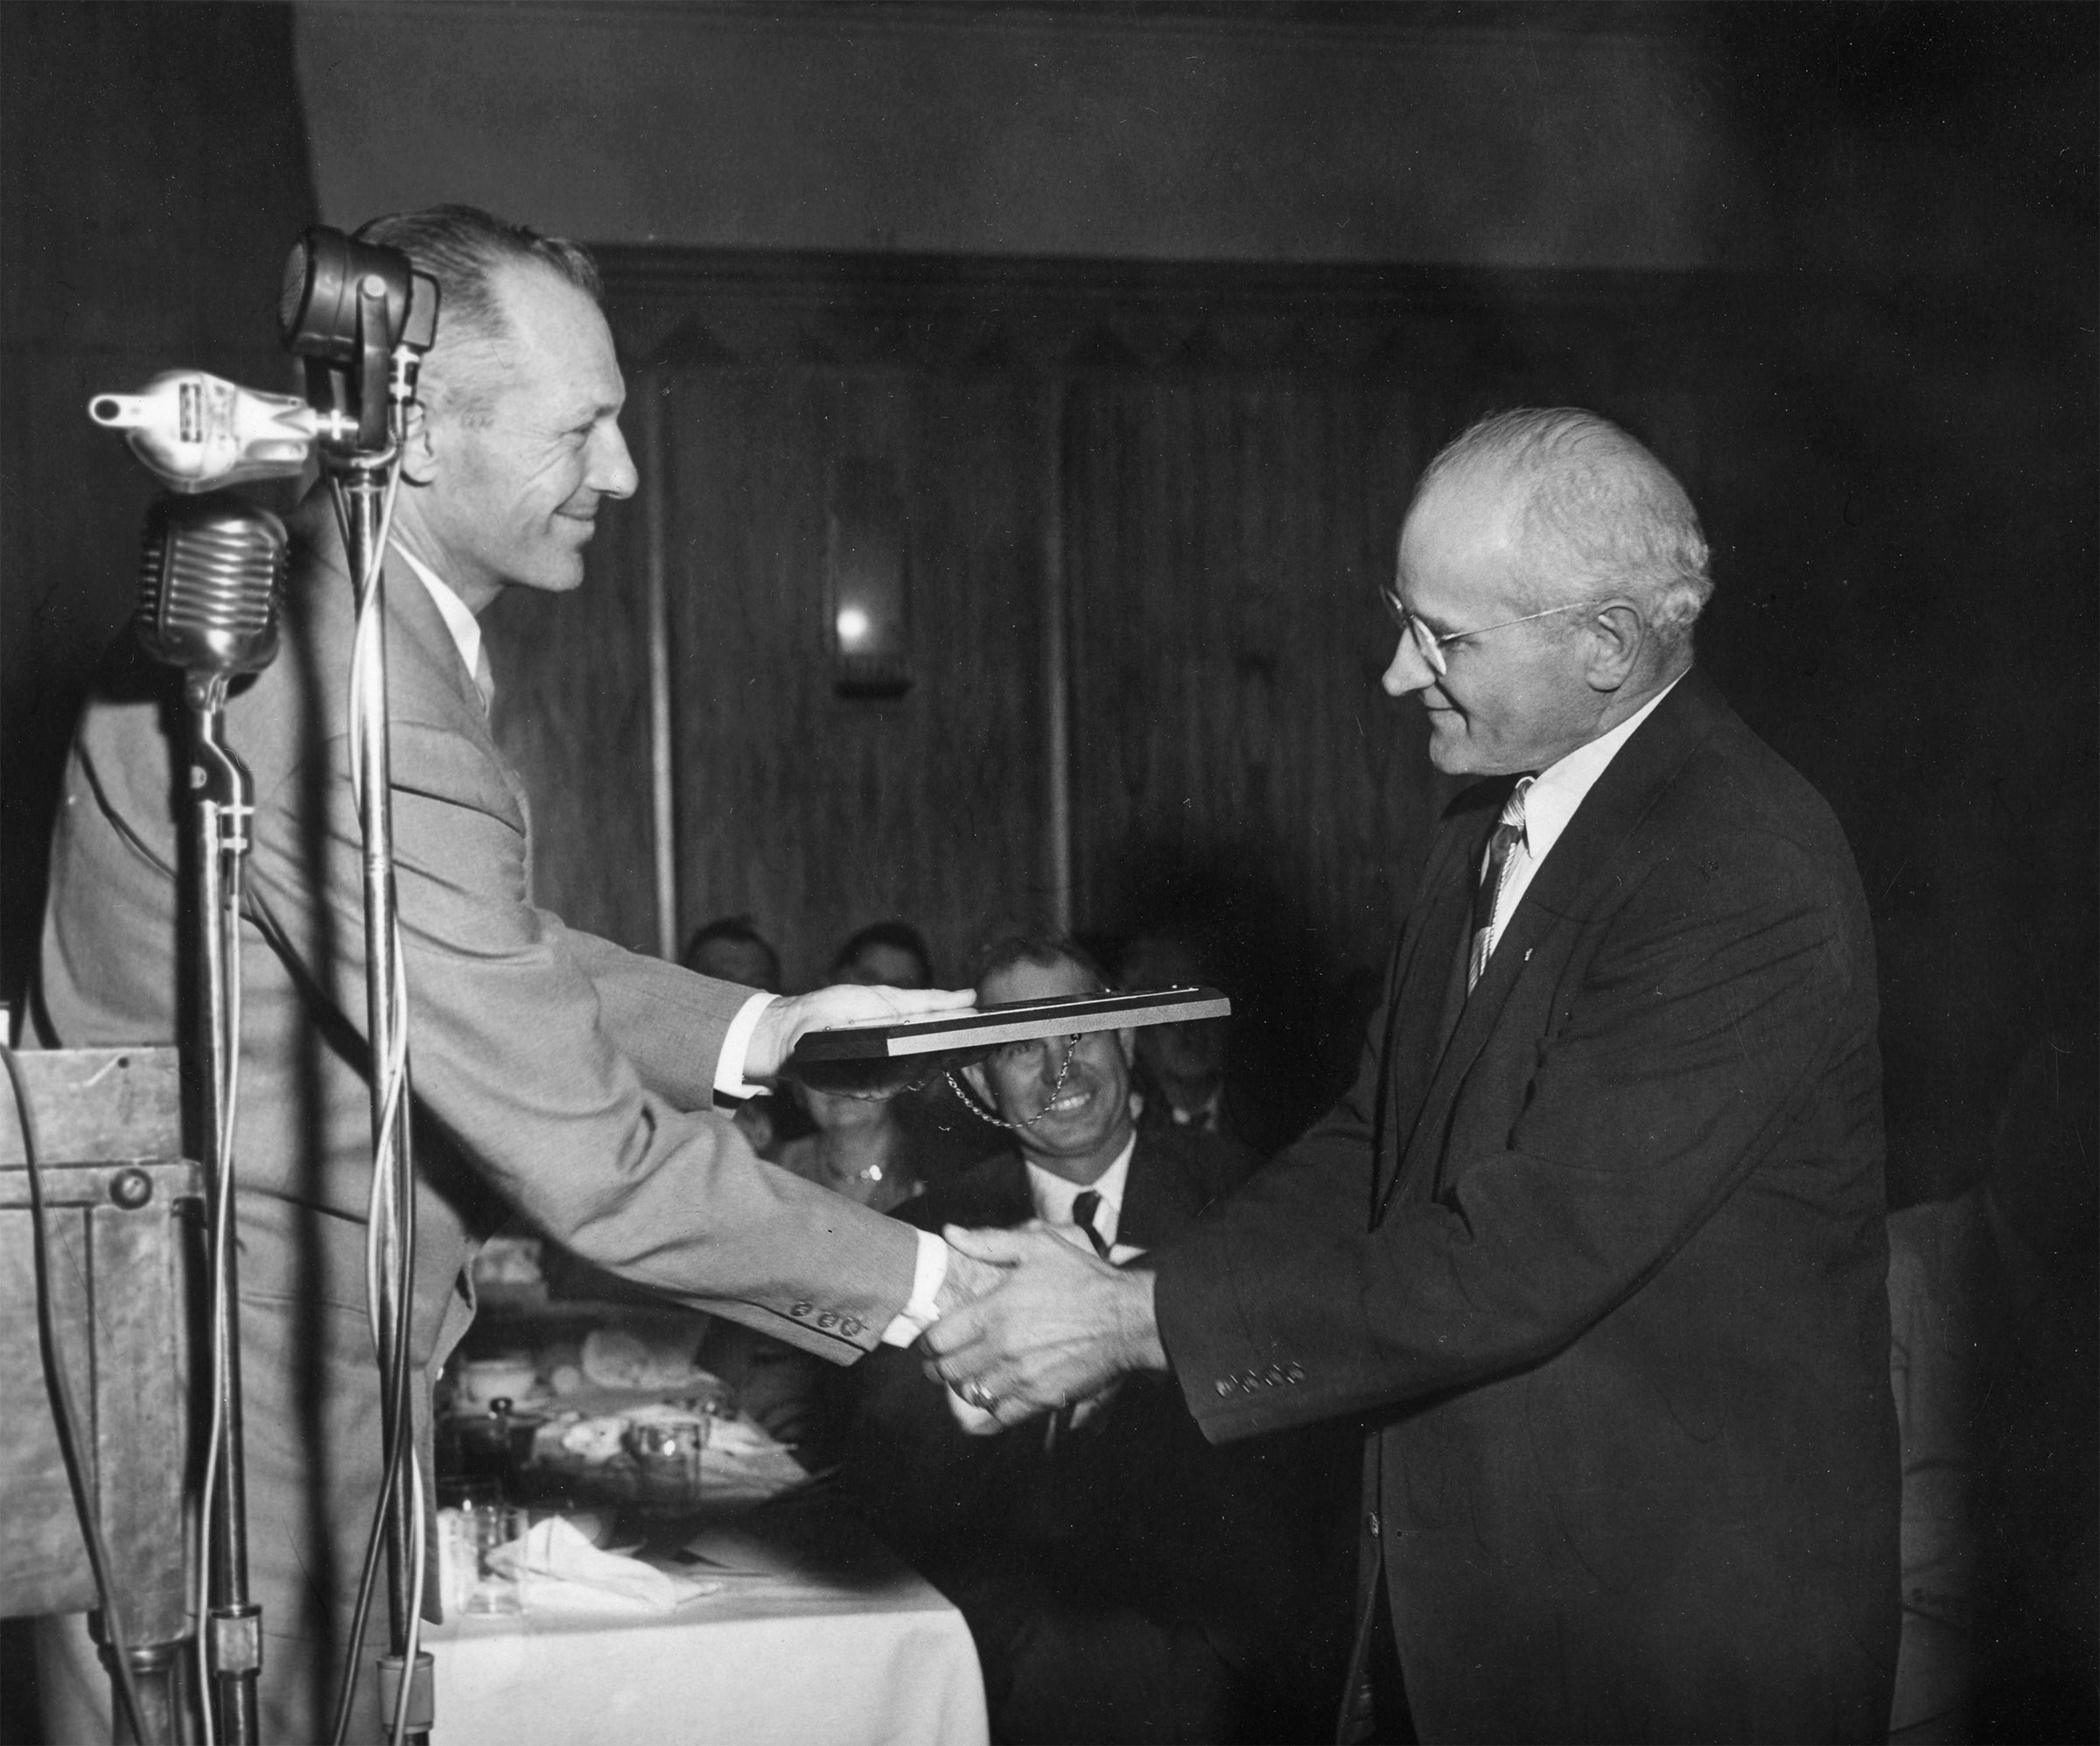 In August 1953, John I. Taylor resigned as president of Oklahoma Farm Bureau due to pressing family matters. In this photo, Taylor was honored with a plaque commemorating his 11 years of service and leadership to Farm Bureau, presented by OKFB Board Member Darrell McNutt at the 1953 convention. However, Taylor did not end his commitment to Farm Bureau with his resignation. In 1960, he was called to Washington, D.C., by American Farm Bureau Federation President Charles Shuman to serve as an assistant legislative director. In his new position, he visited several states, earning a reputation as a well-informed specialist on soil and water conservation among congressmen and associates.